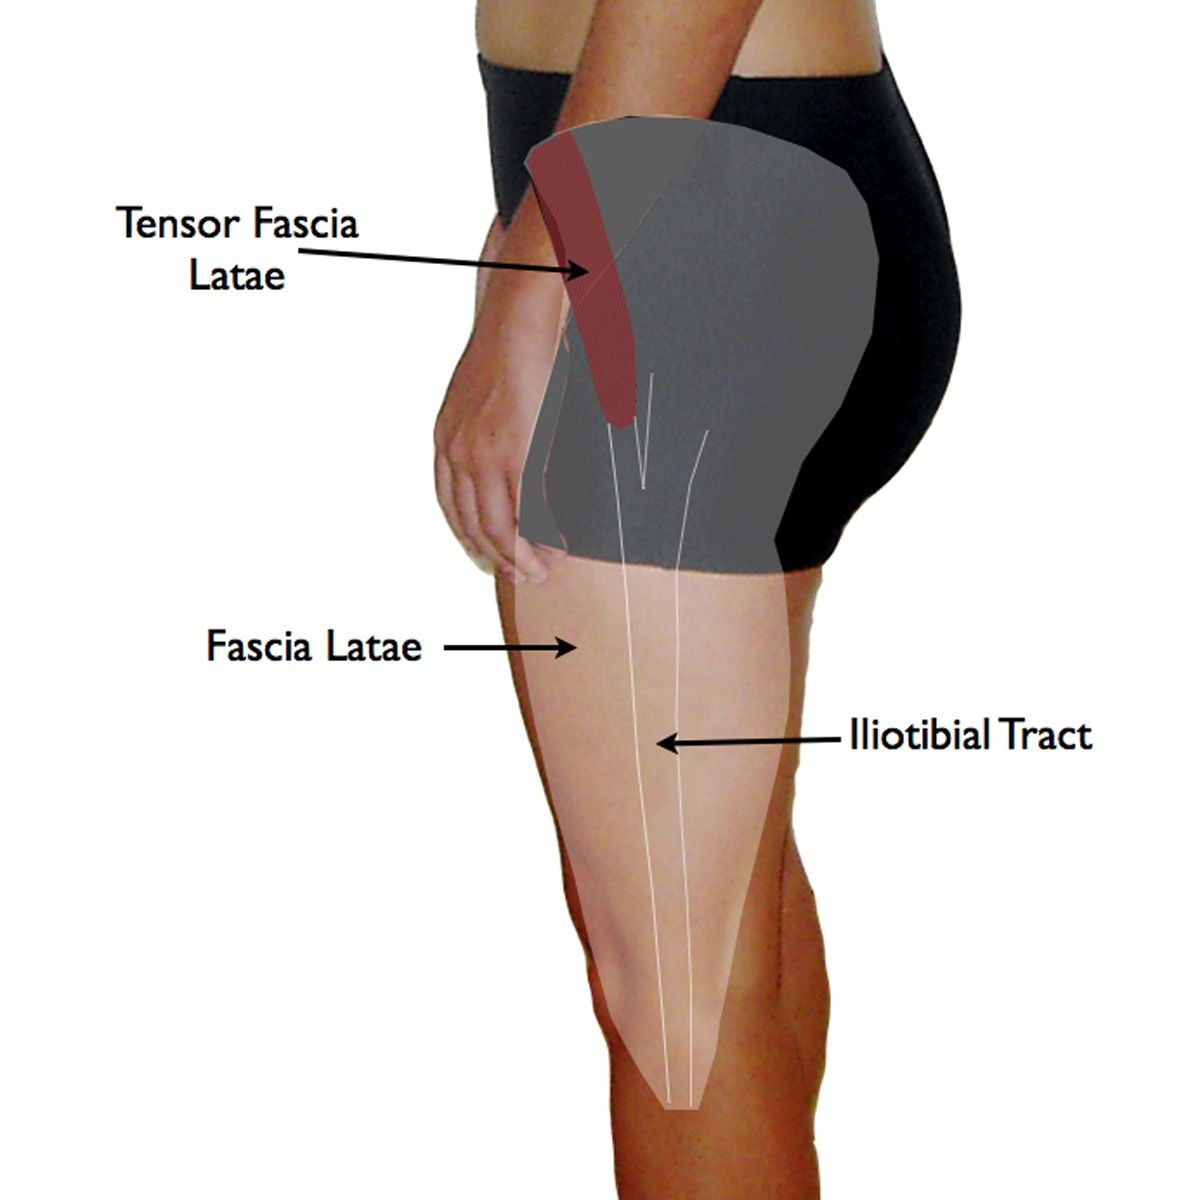 Tensor Fascia Lata Trigger Point The It Band Syndrome And Hip Pain